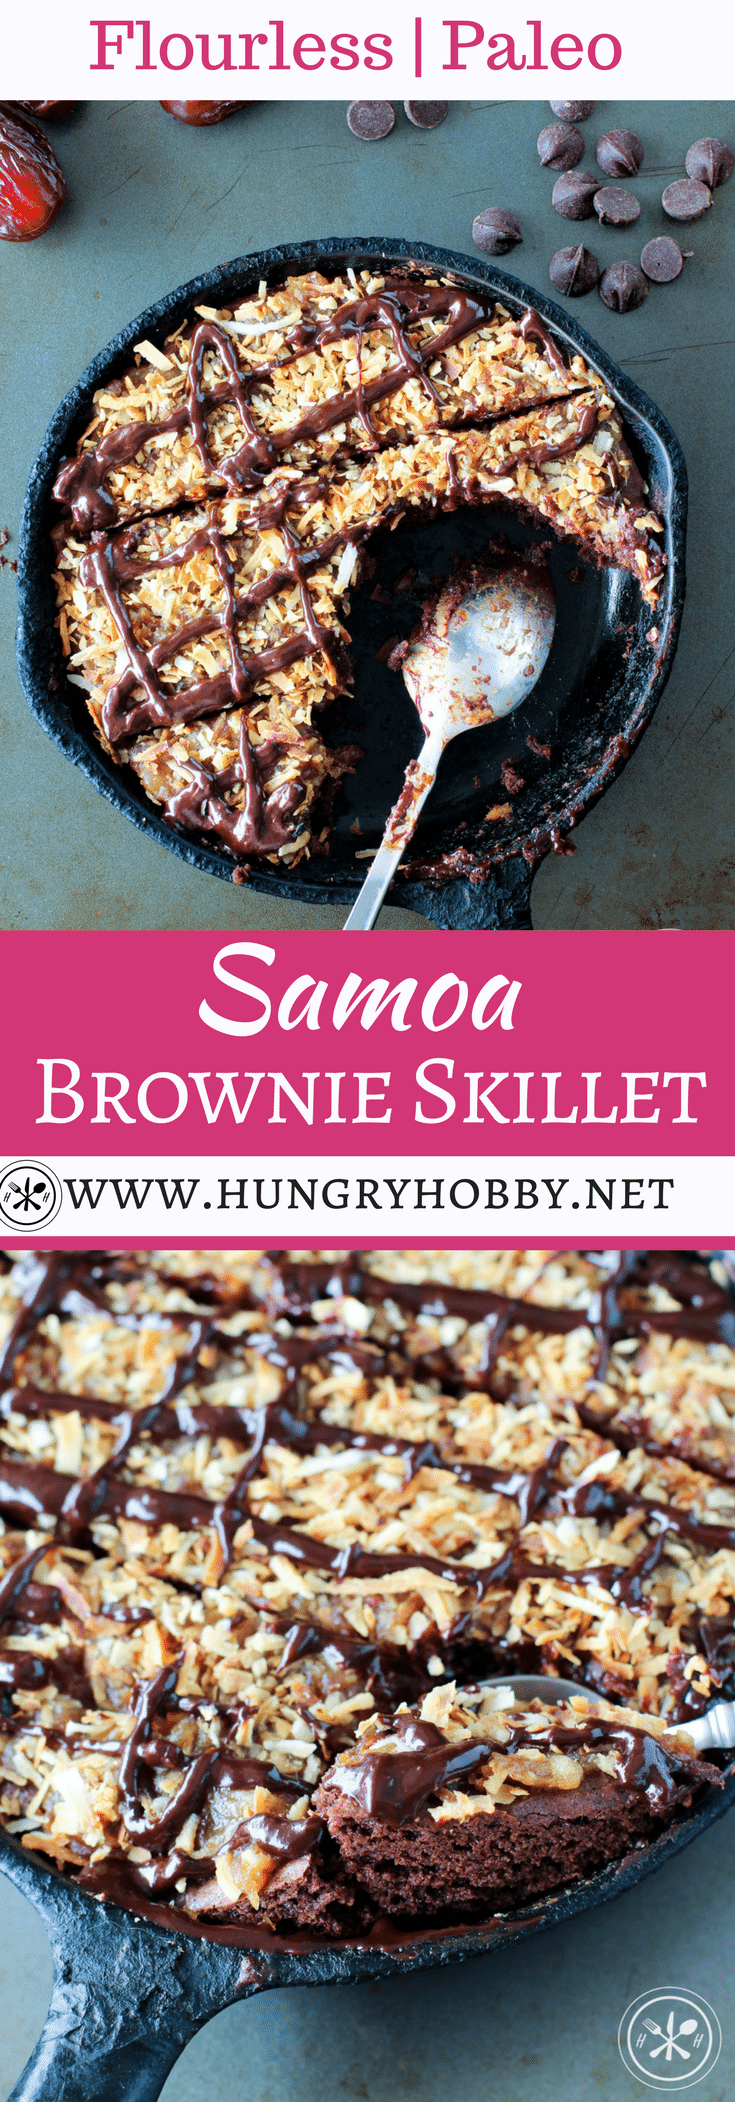 This Flourless Samoa Brownie Skillet is perfect when you want a little dessert around but not an ENTIRE batch of brownies, you feel me? Chewy fudgy brownie topped with date caramel and toasted coconut flakes, it's good, REAL good! #hungryhobby #glutenfree #dairyfree